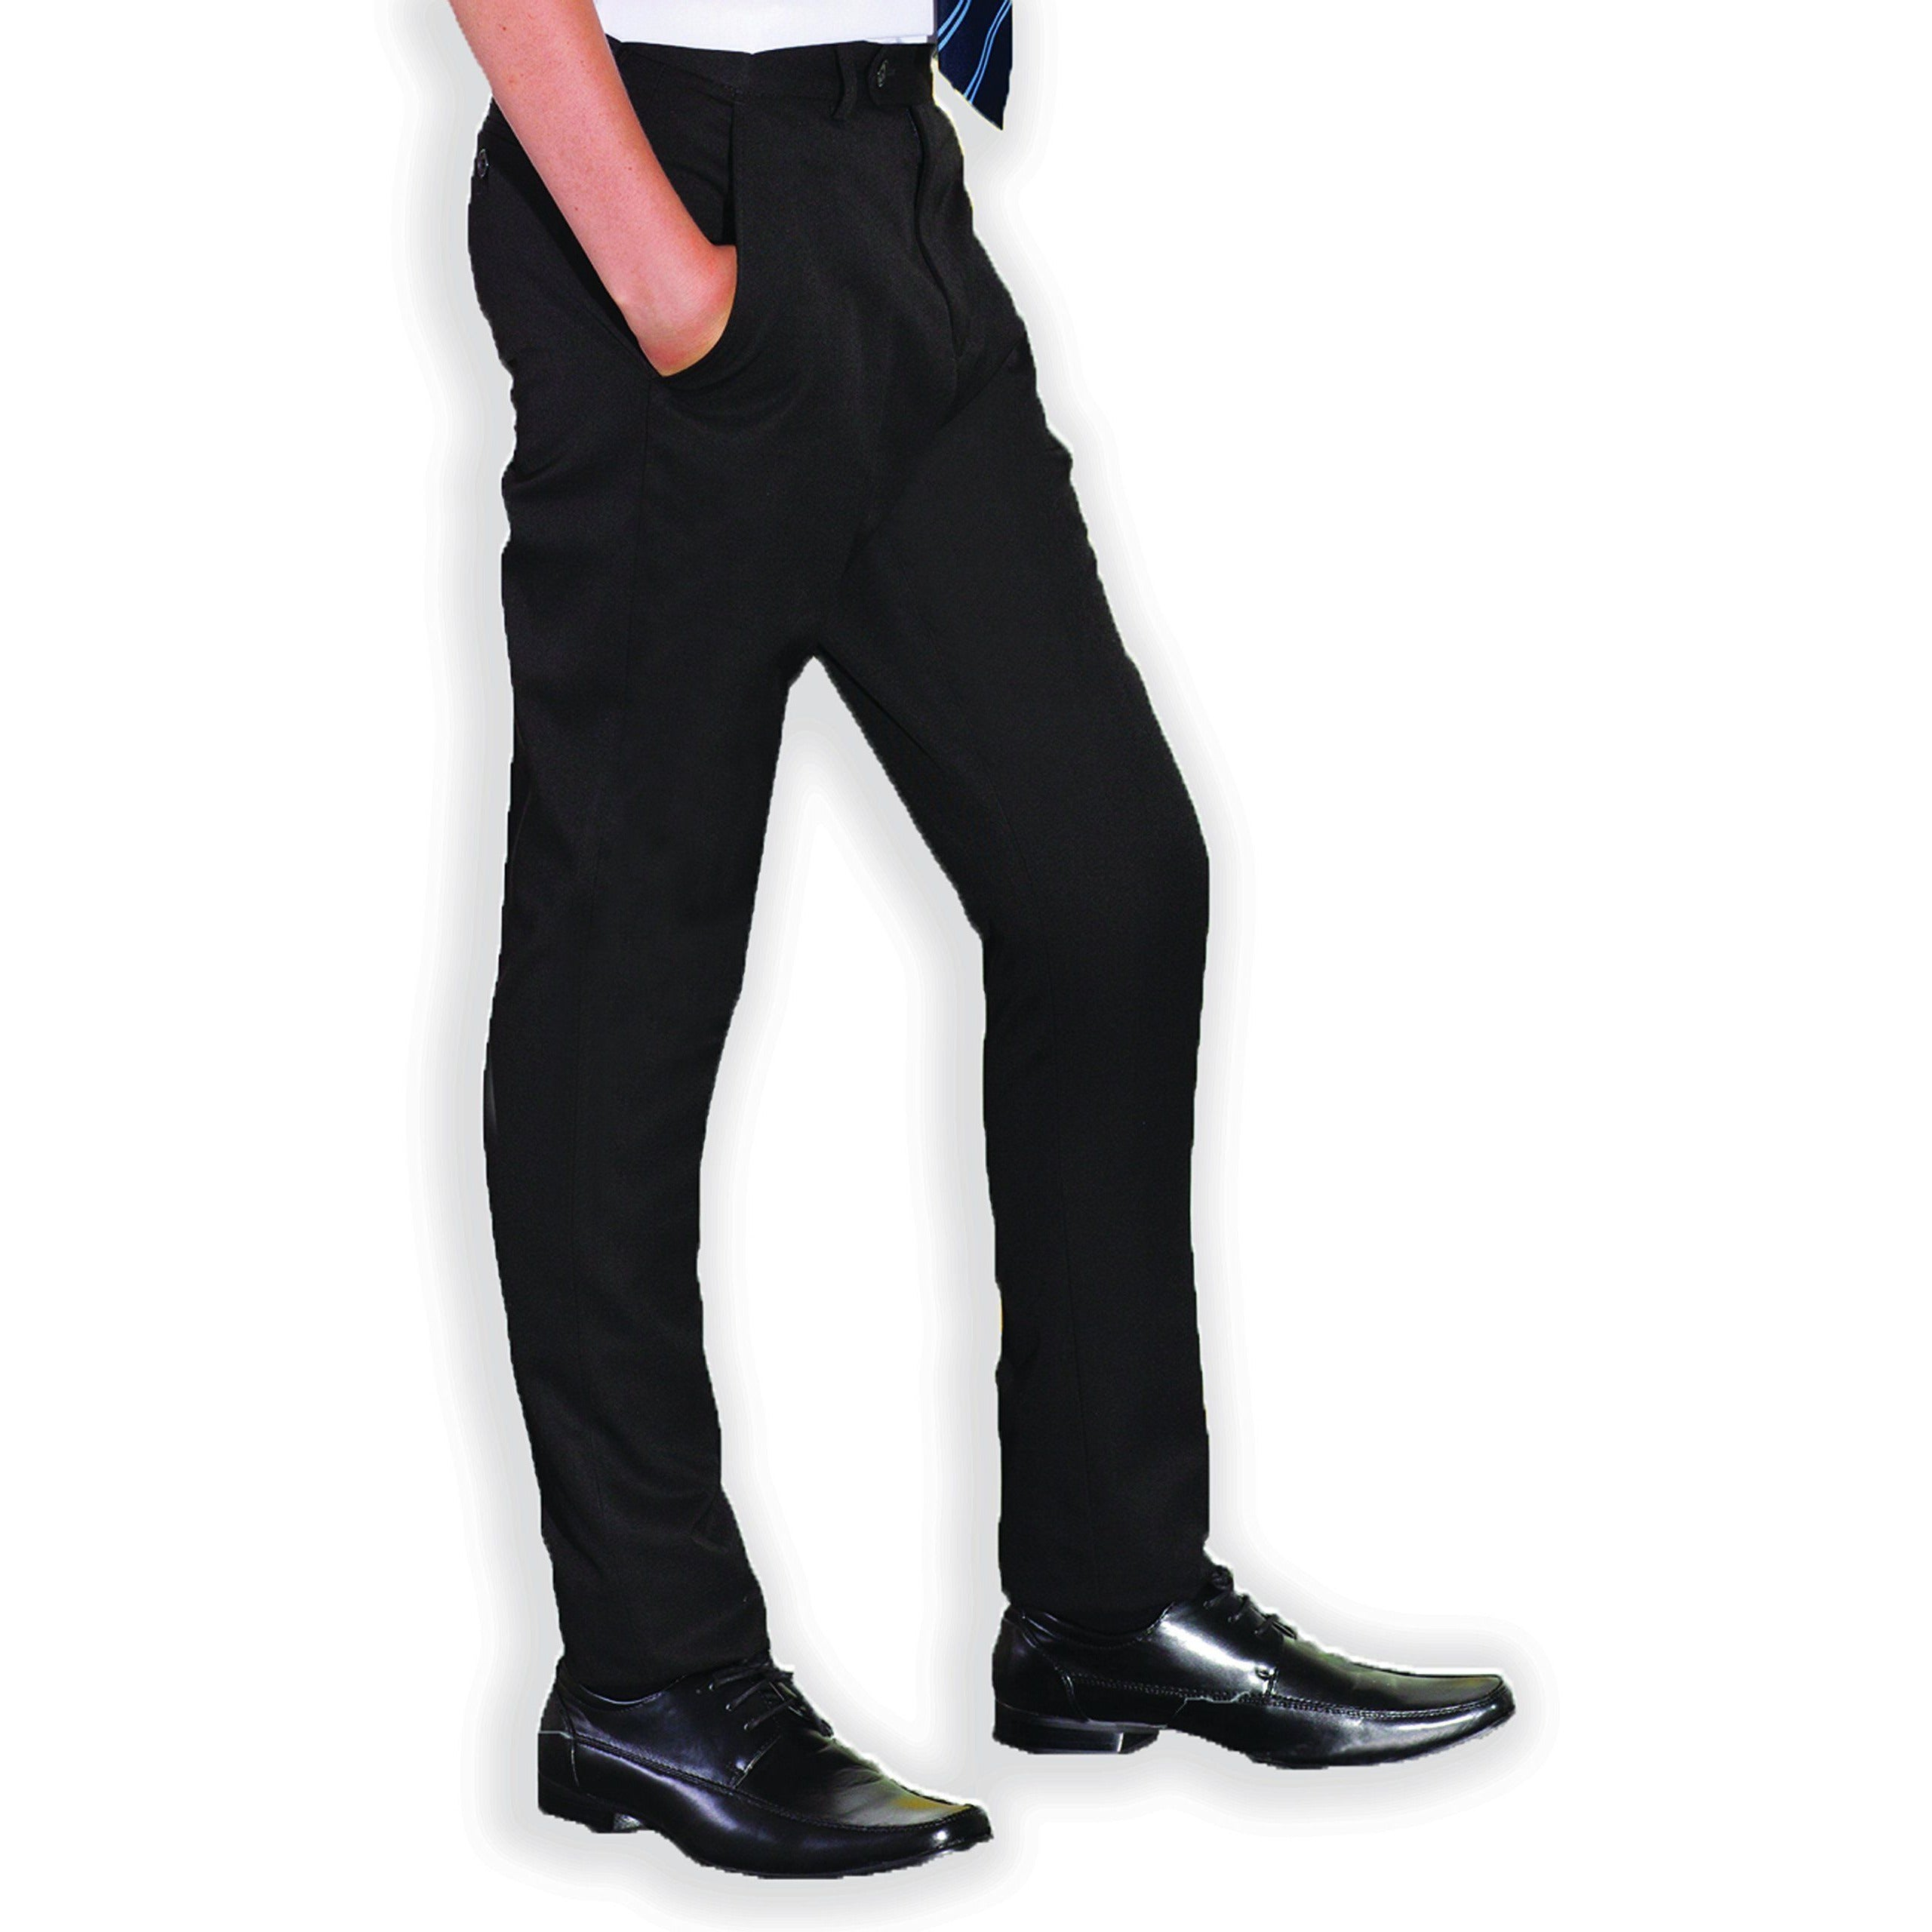 Senior Boys Slim Fit Black Charcoal Grey Navy Slim Leg Adjustable Waist School Trousers (Short Regular and Long Leg)